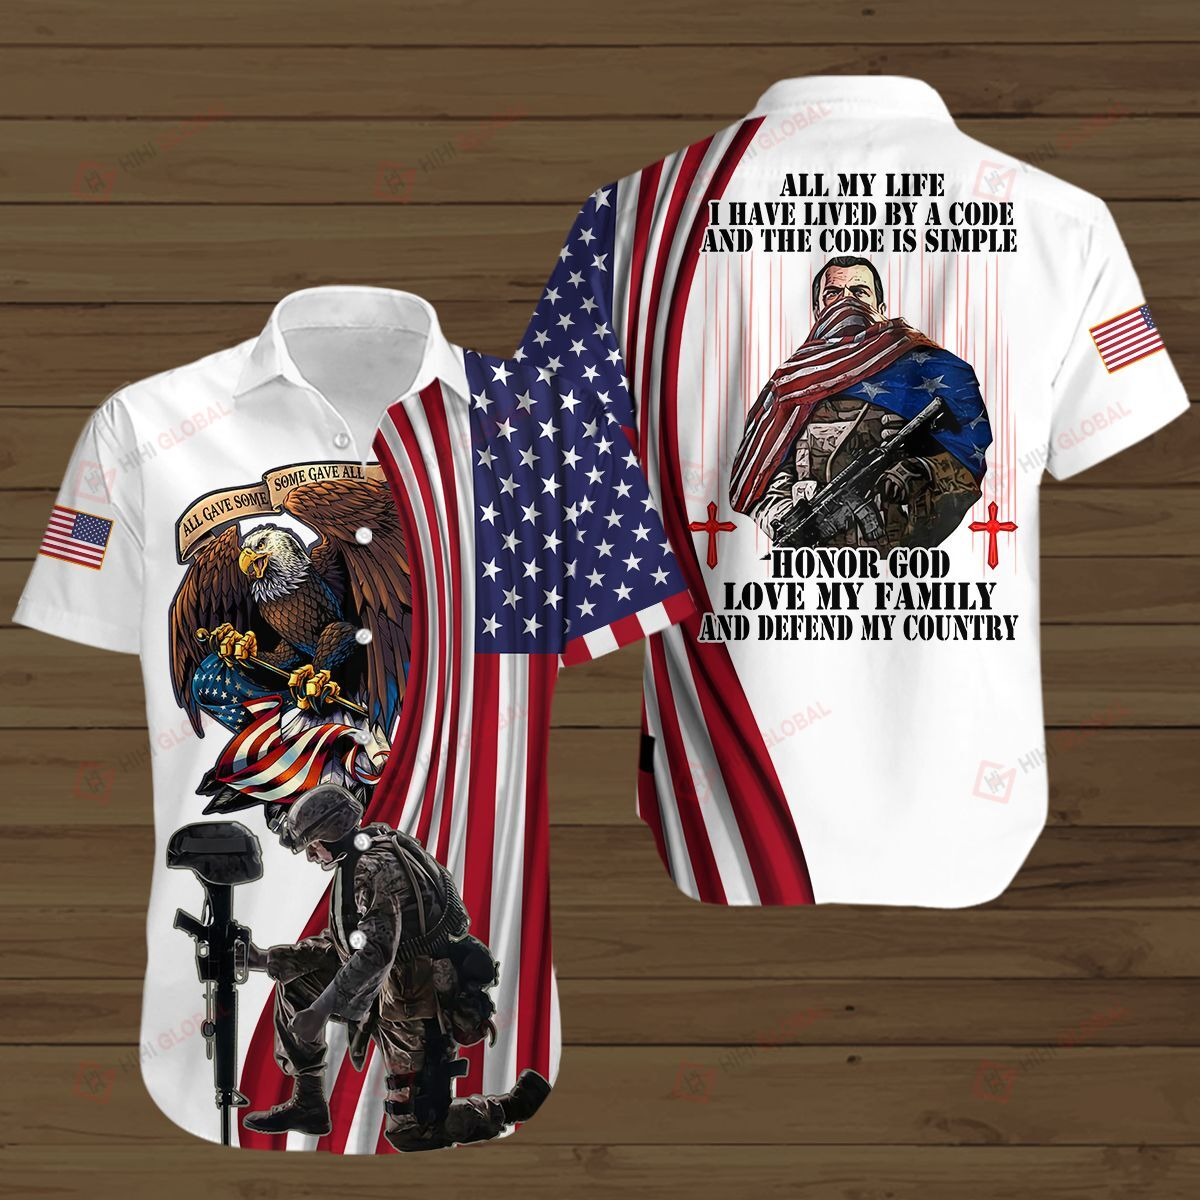 American Soldier Honor God Lived By A Code and Code is Simple 3D Shirt